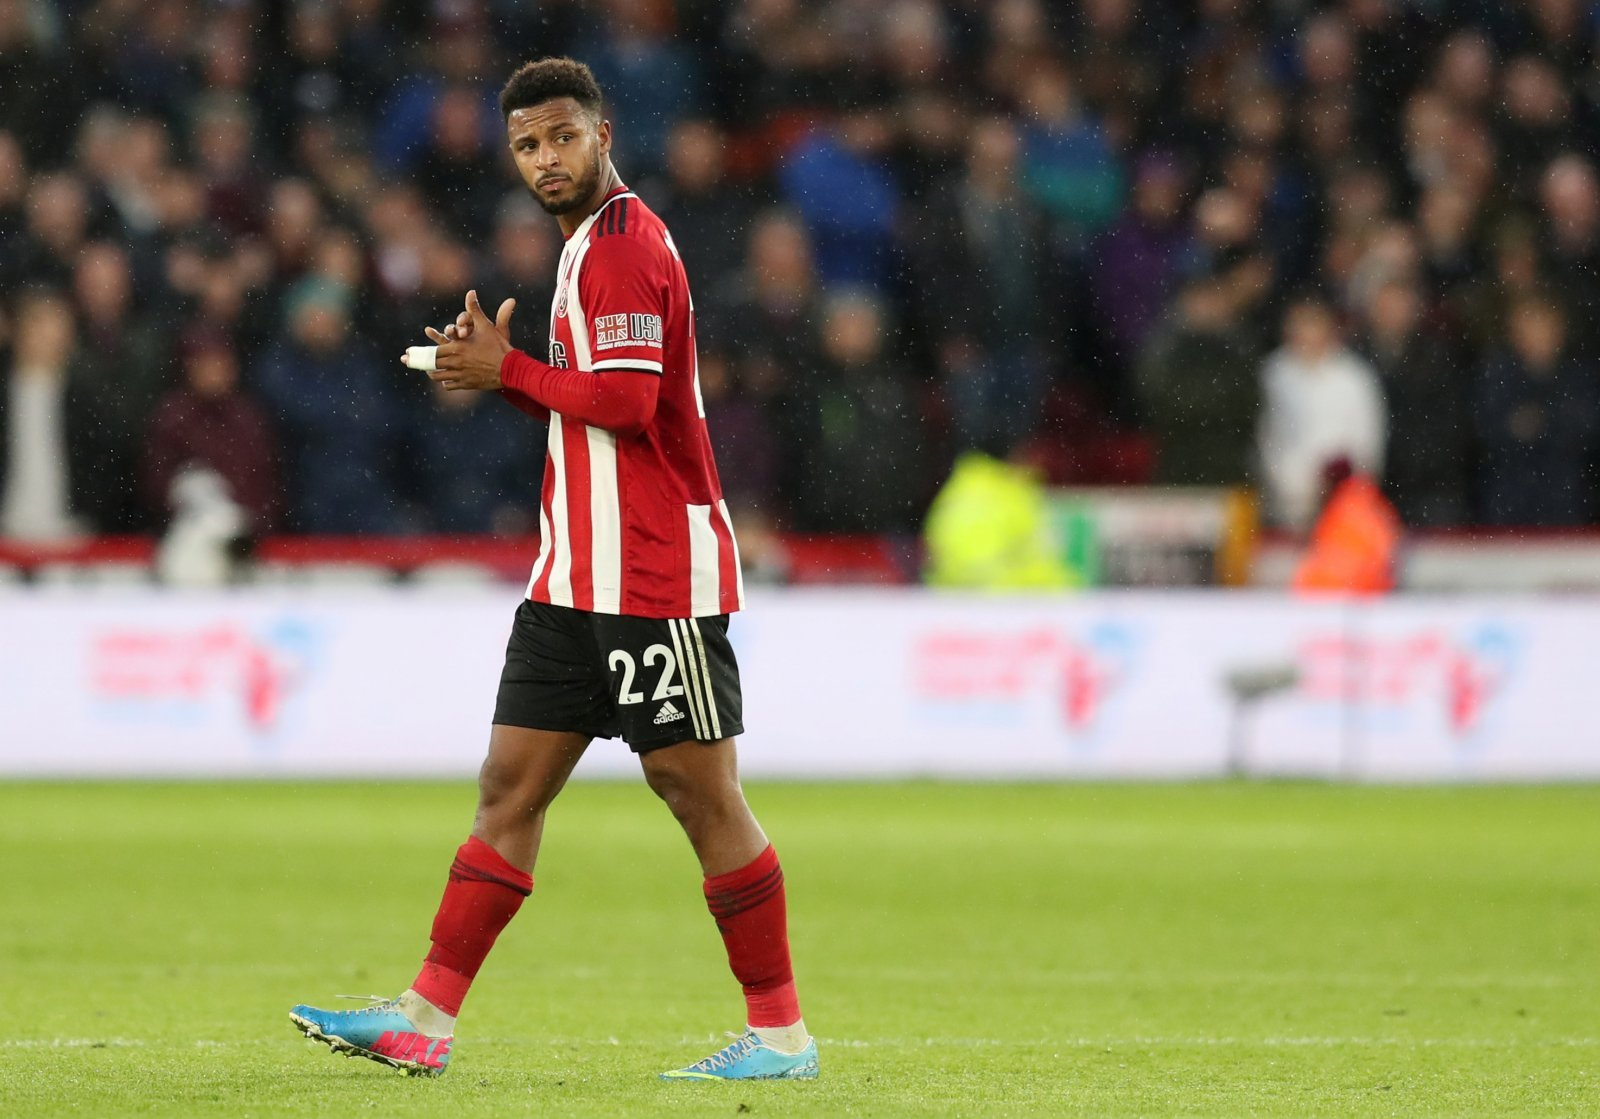 Sheffield United: Fans want David McGoldrick and Lys Mousset back in the starting line-up